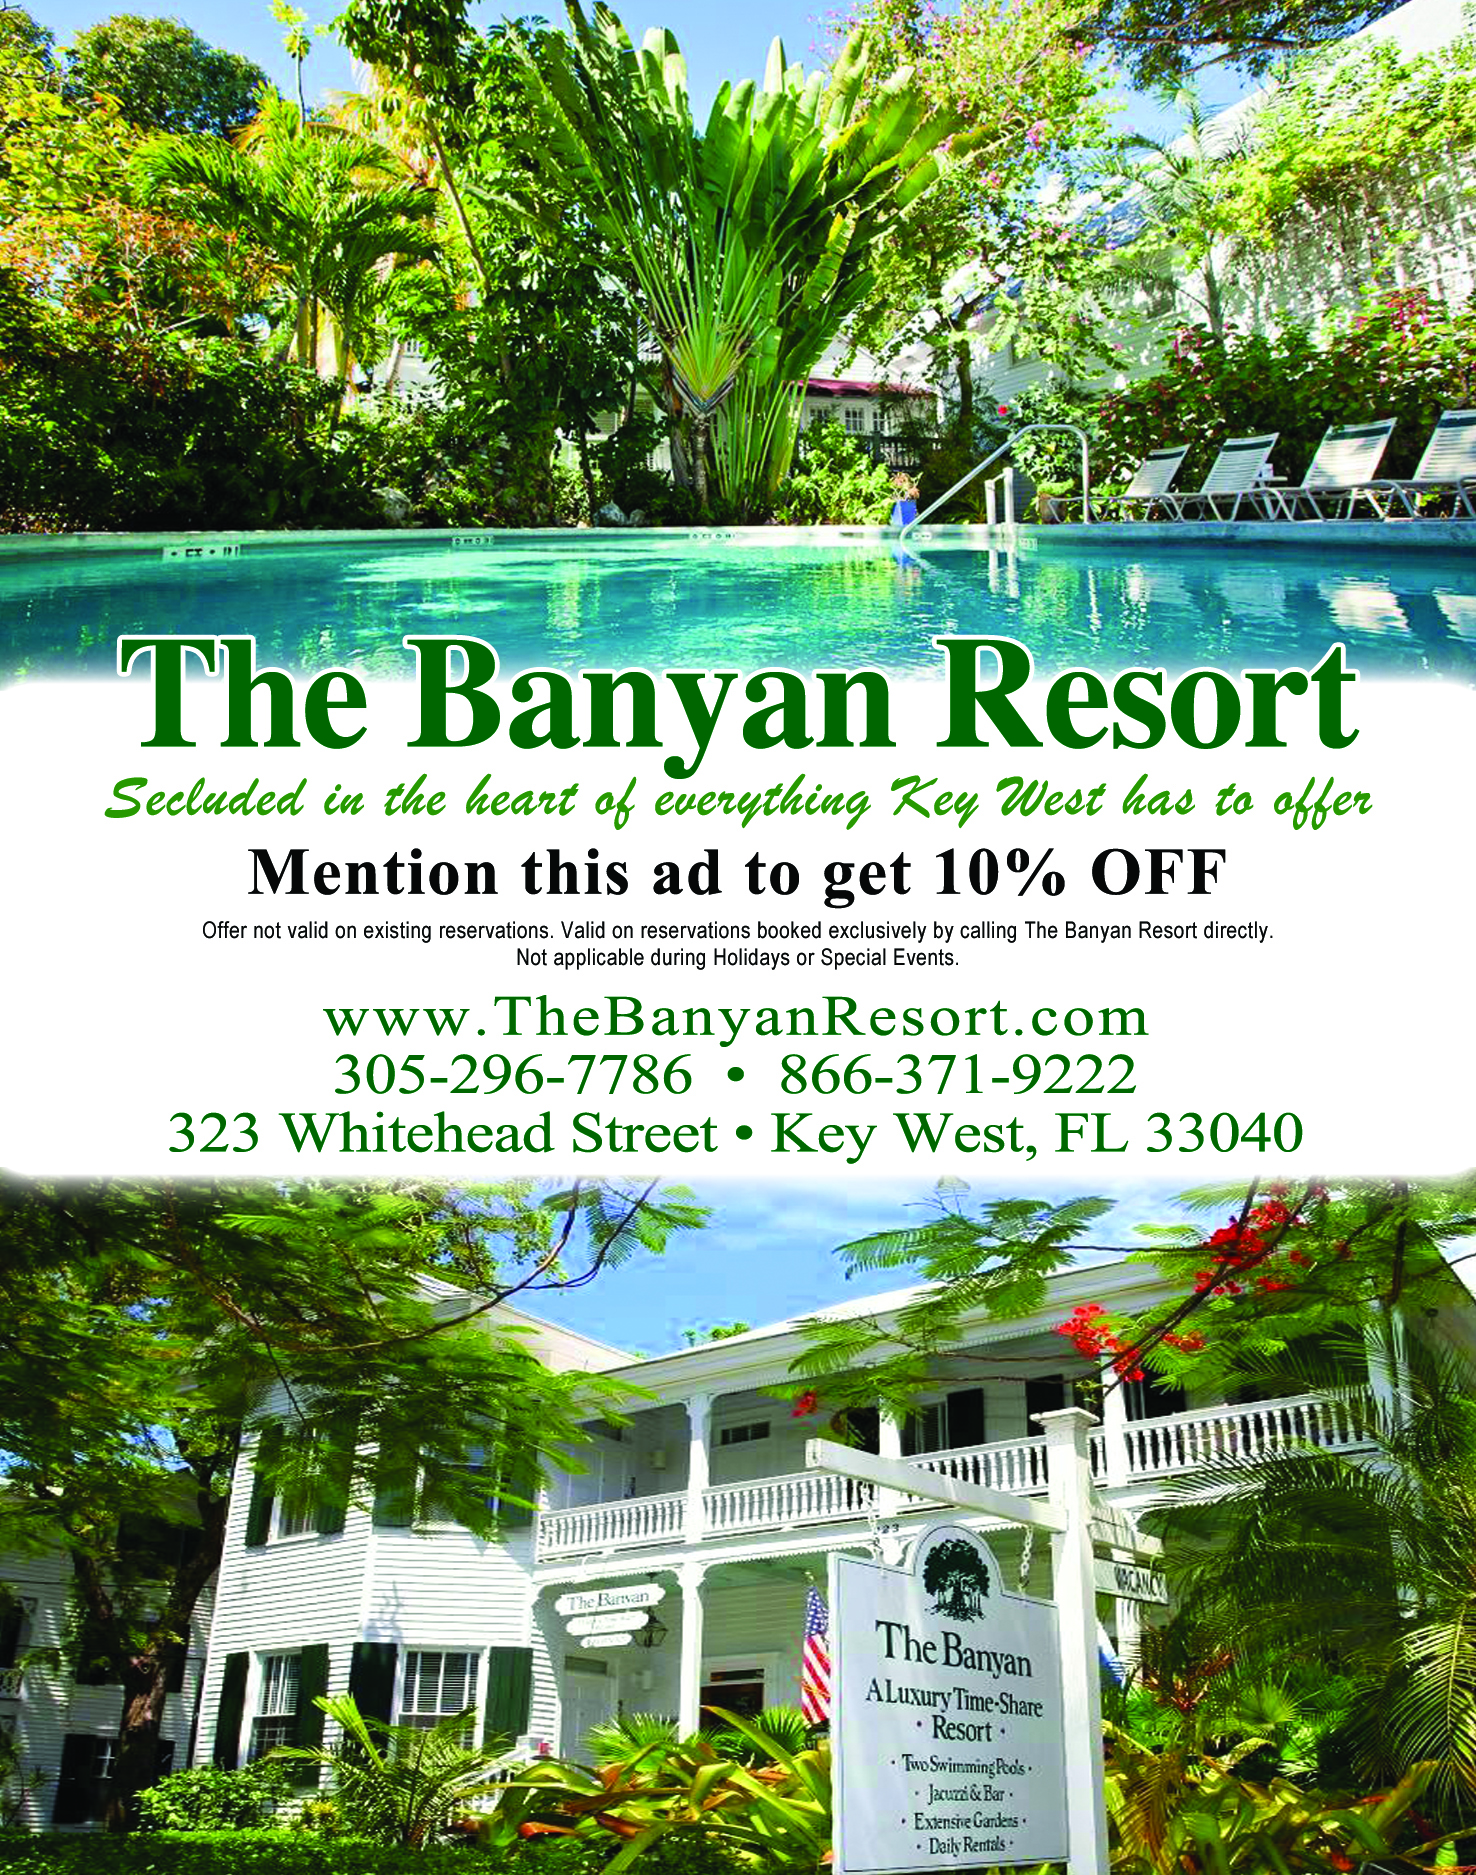 The Banyan Resort